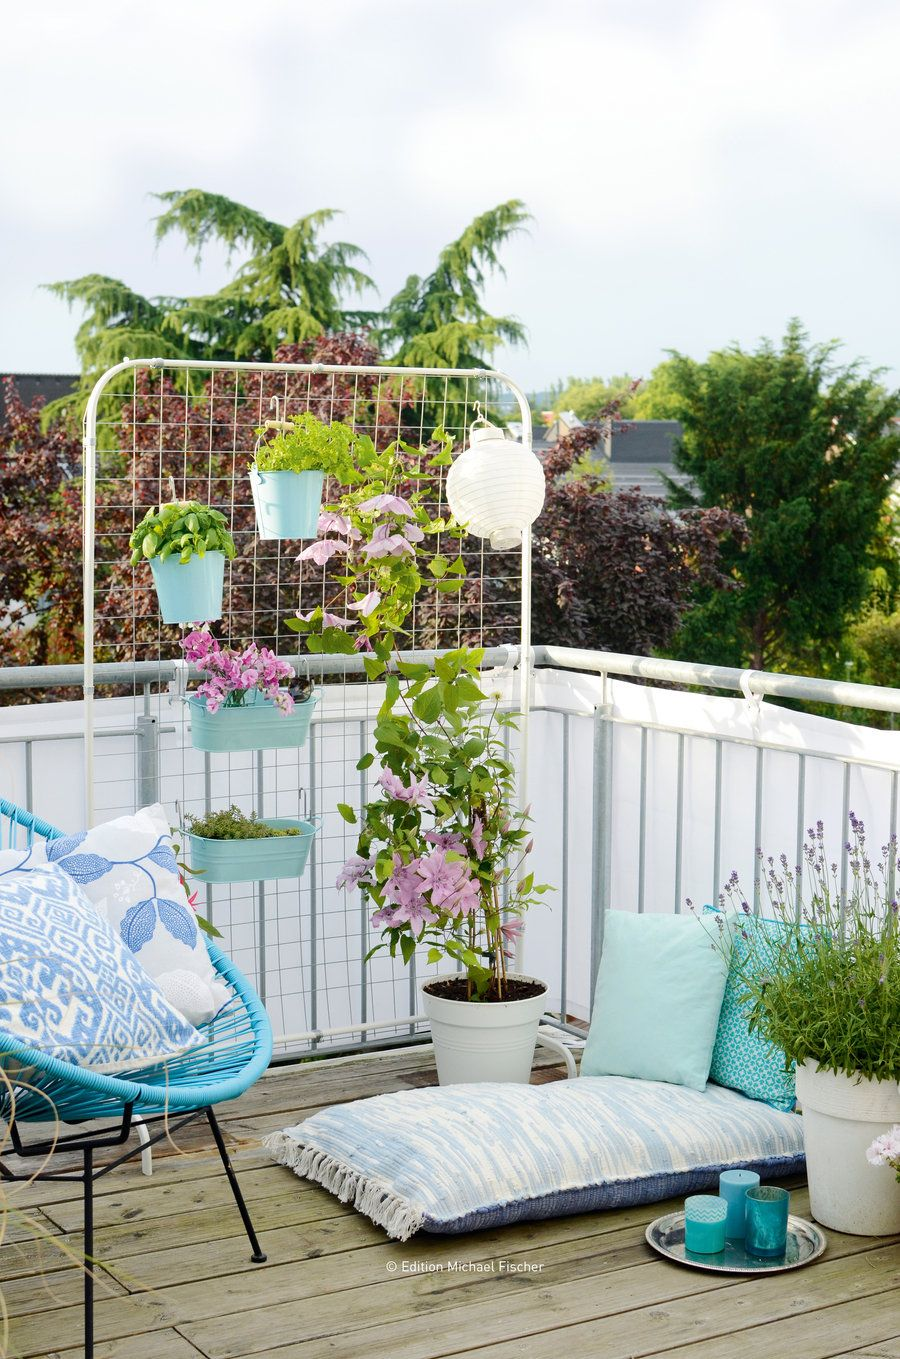 top 3 diy ideen f r balkon und terrasse balconies balcony gardening and gardens. Black Bedroom Furniture Sets. Home Design Ideas